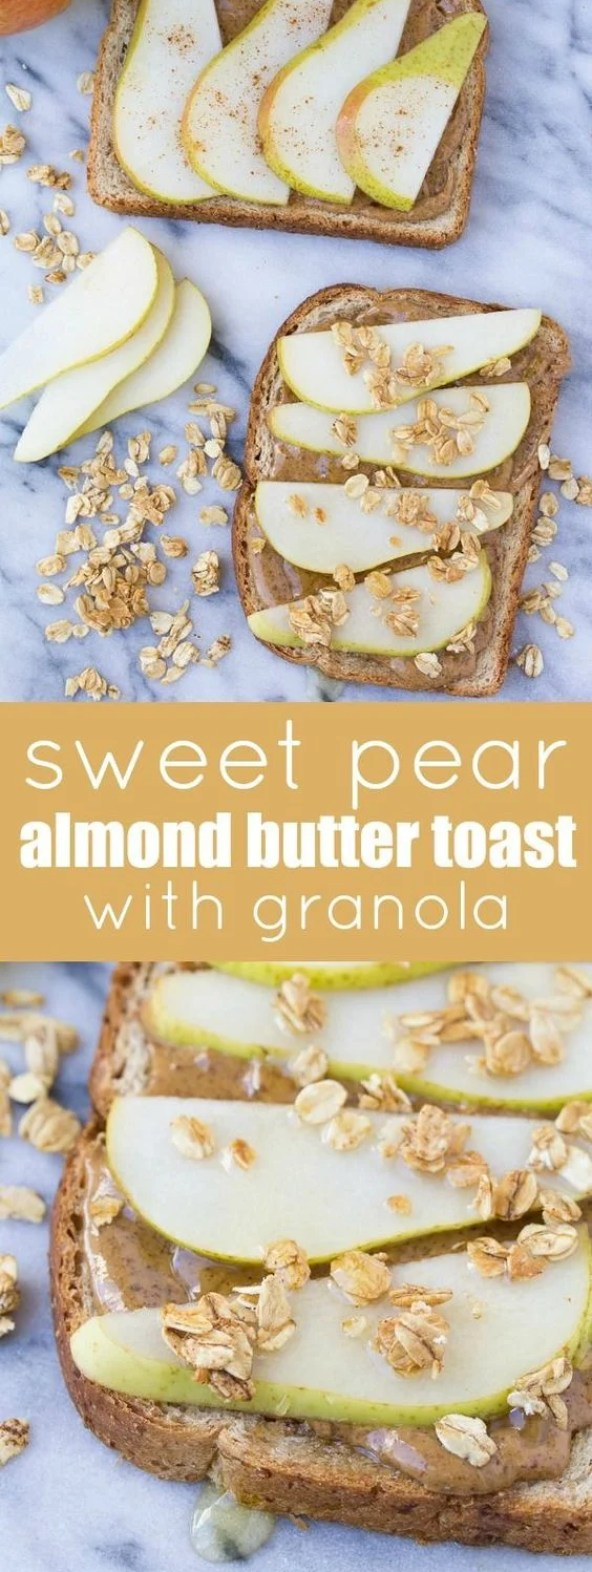 Pear and almond butter is definitely meant to be in this delicious morning breakfast. And is that granola?? It just keeps getting better!